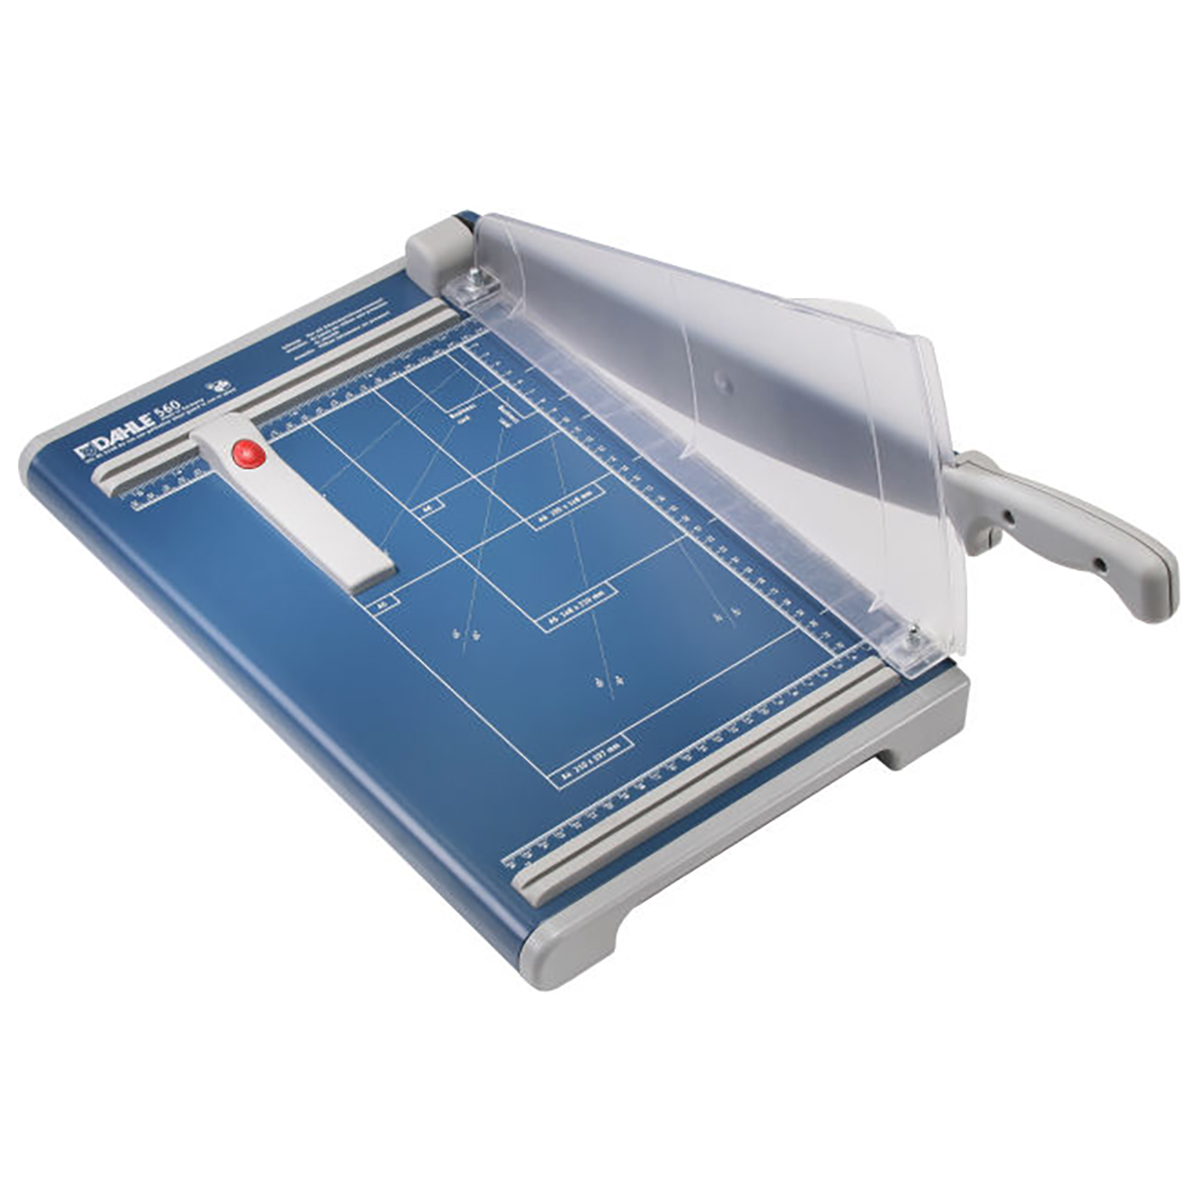 Dahle 560 A4 Personal Guillotine